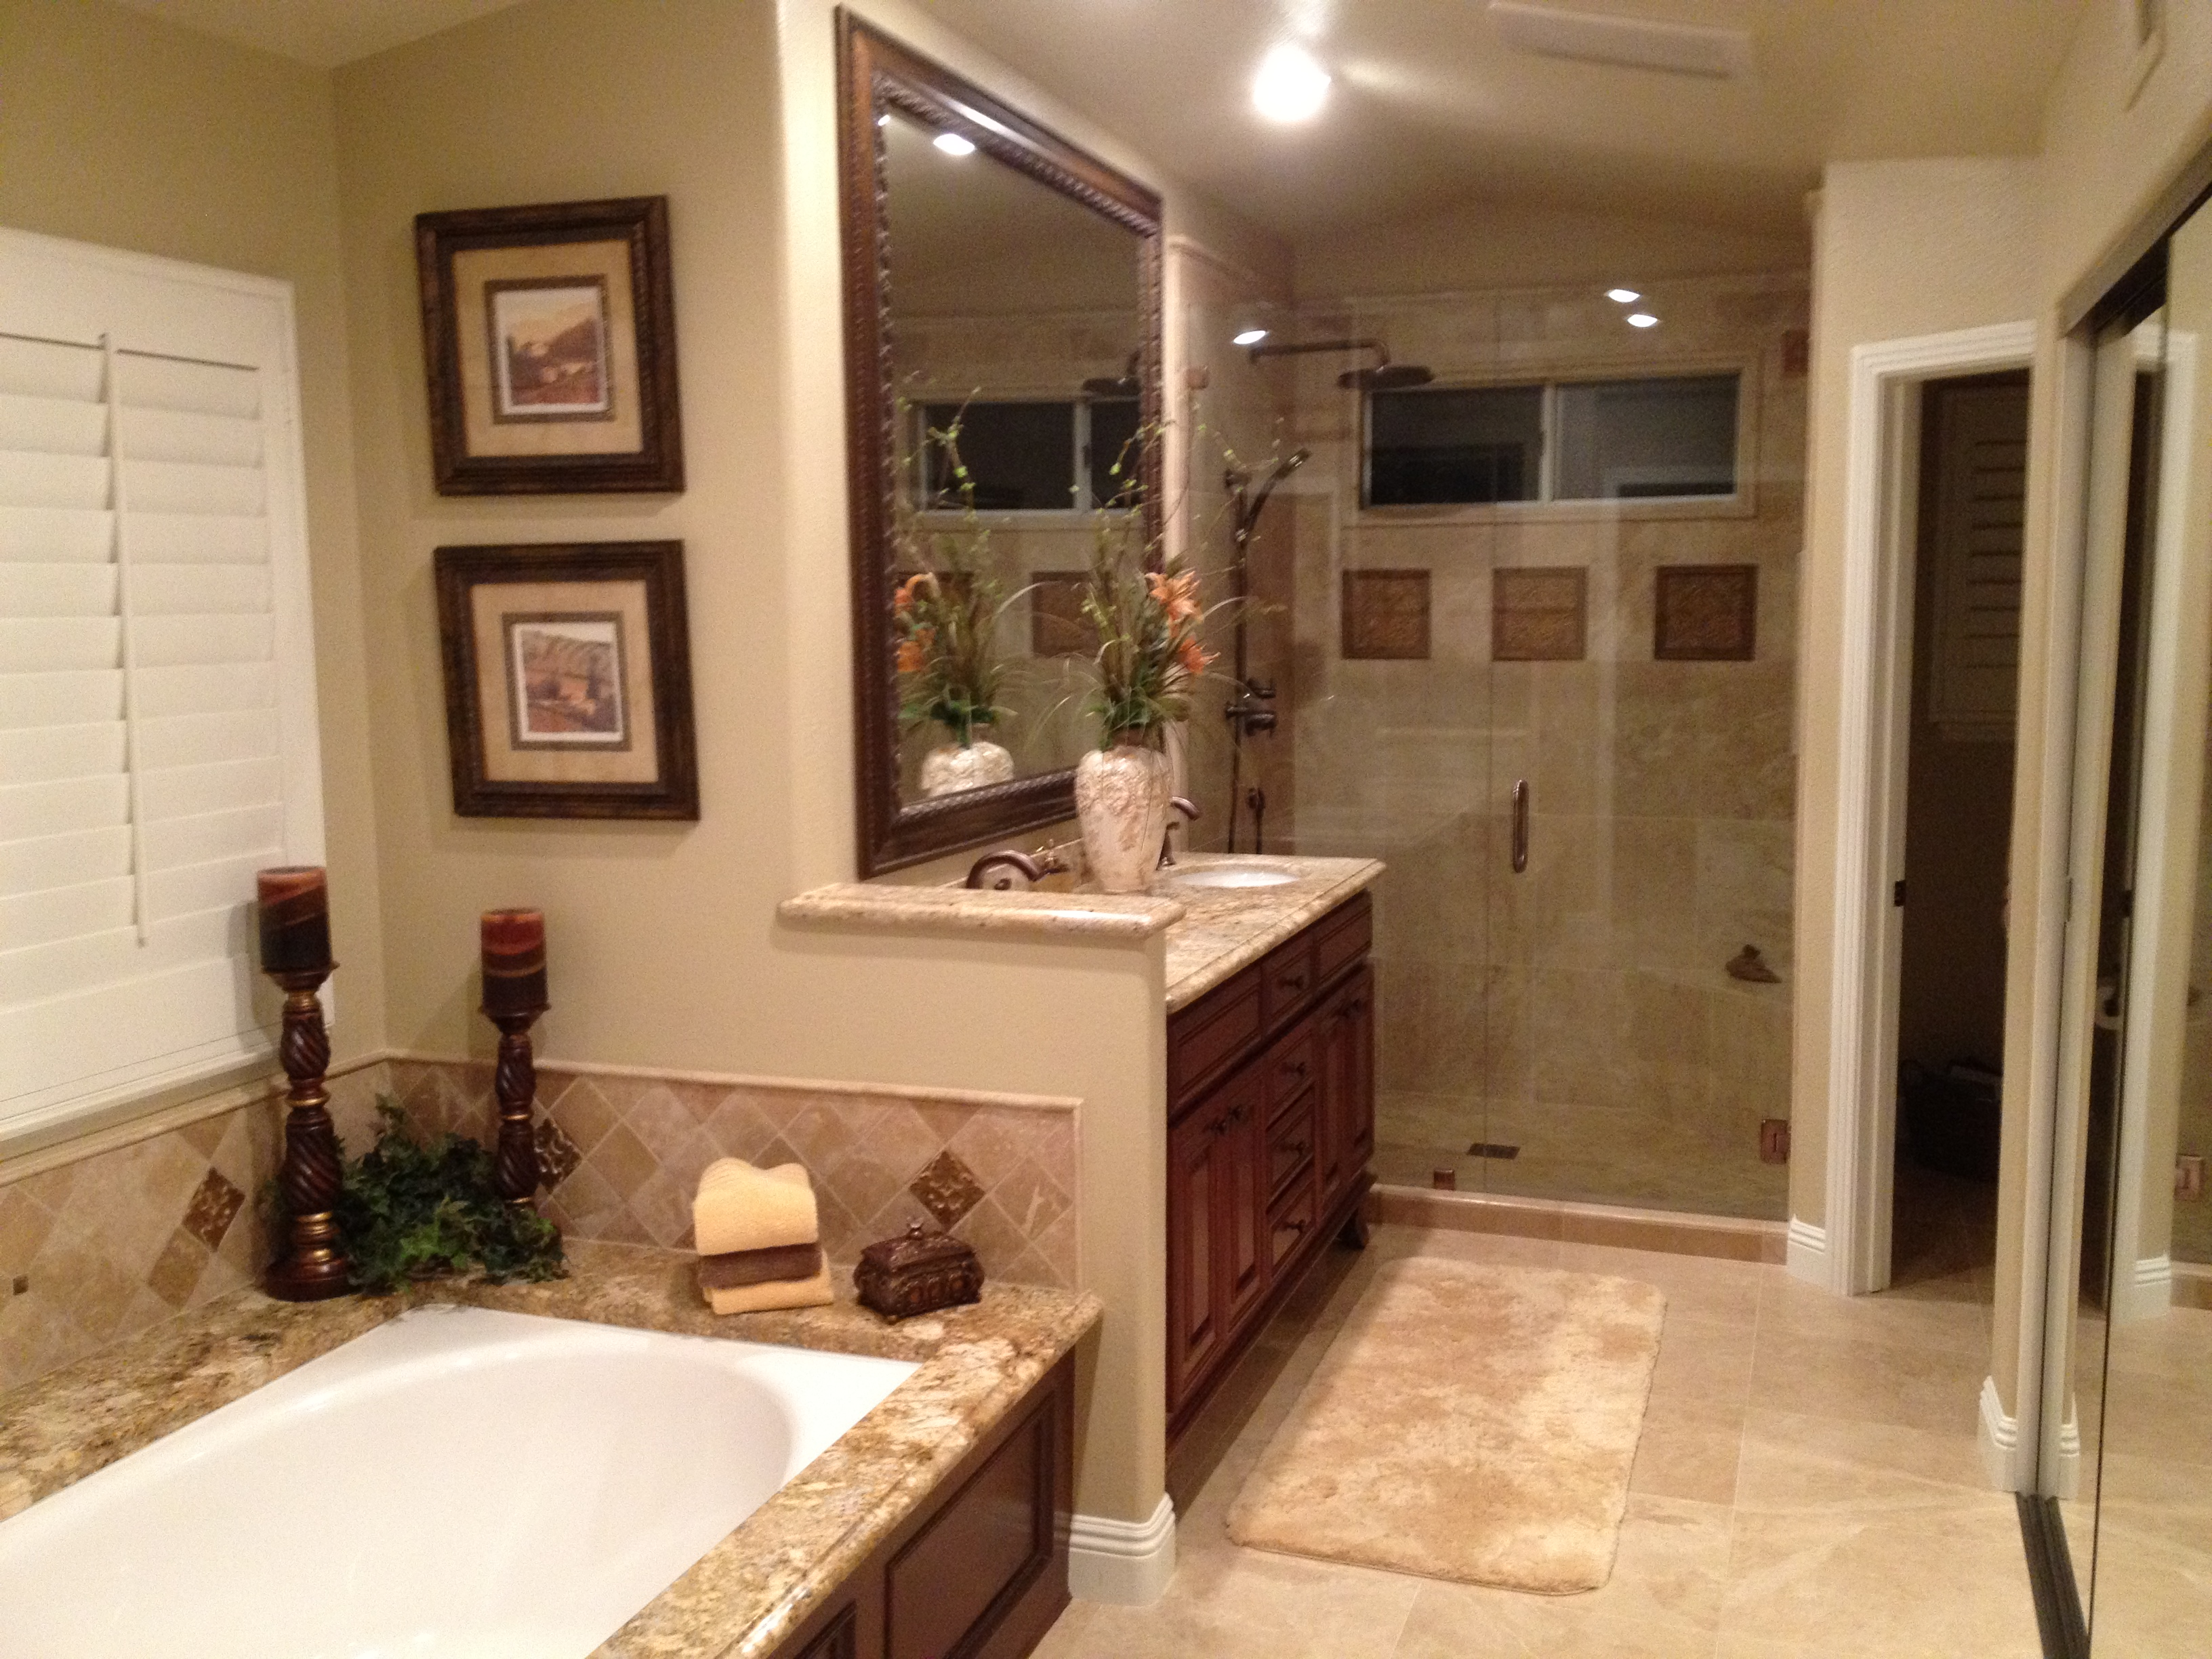 Bathroom Remodeling Orange County00 Bathroom Remodel Orange County Ca  Custom Bathrooms In Orange County